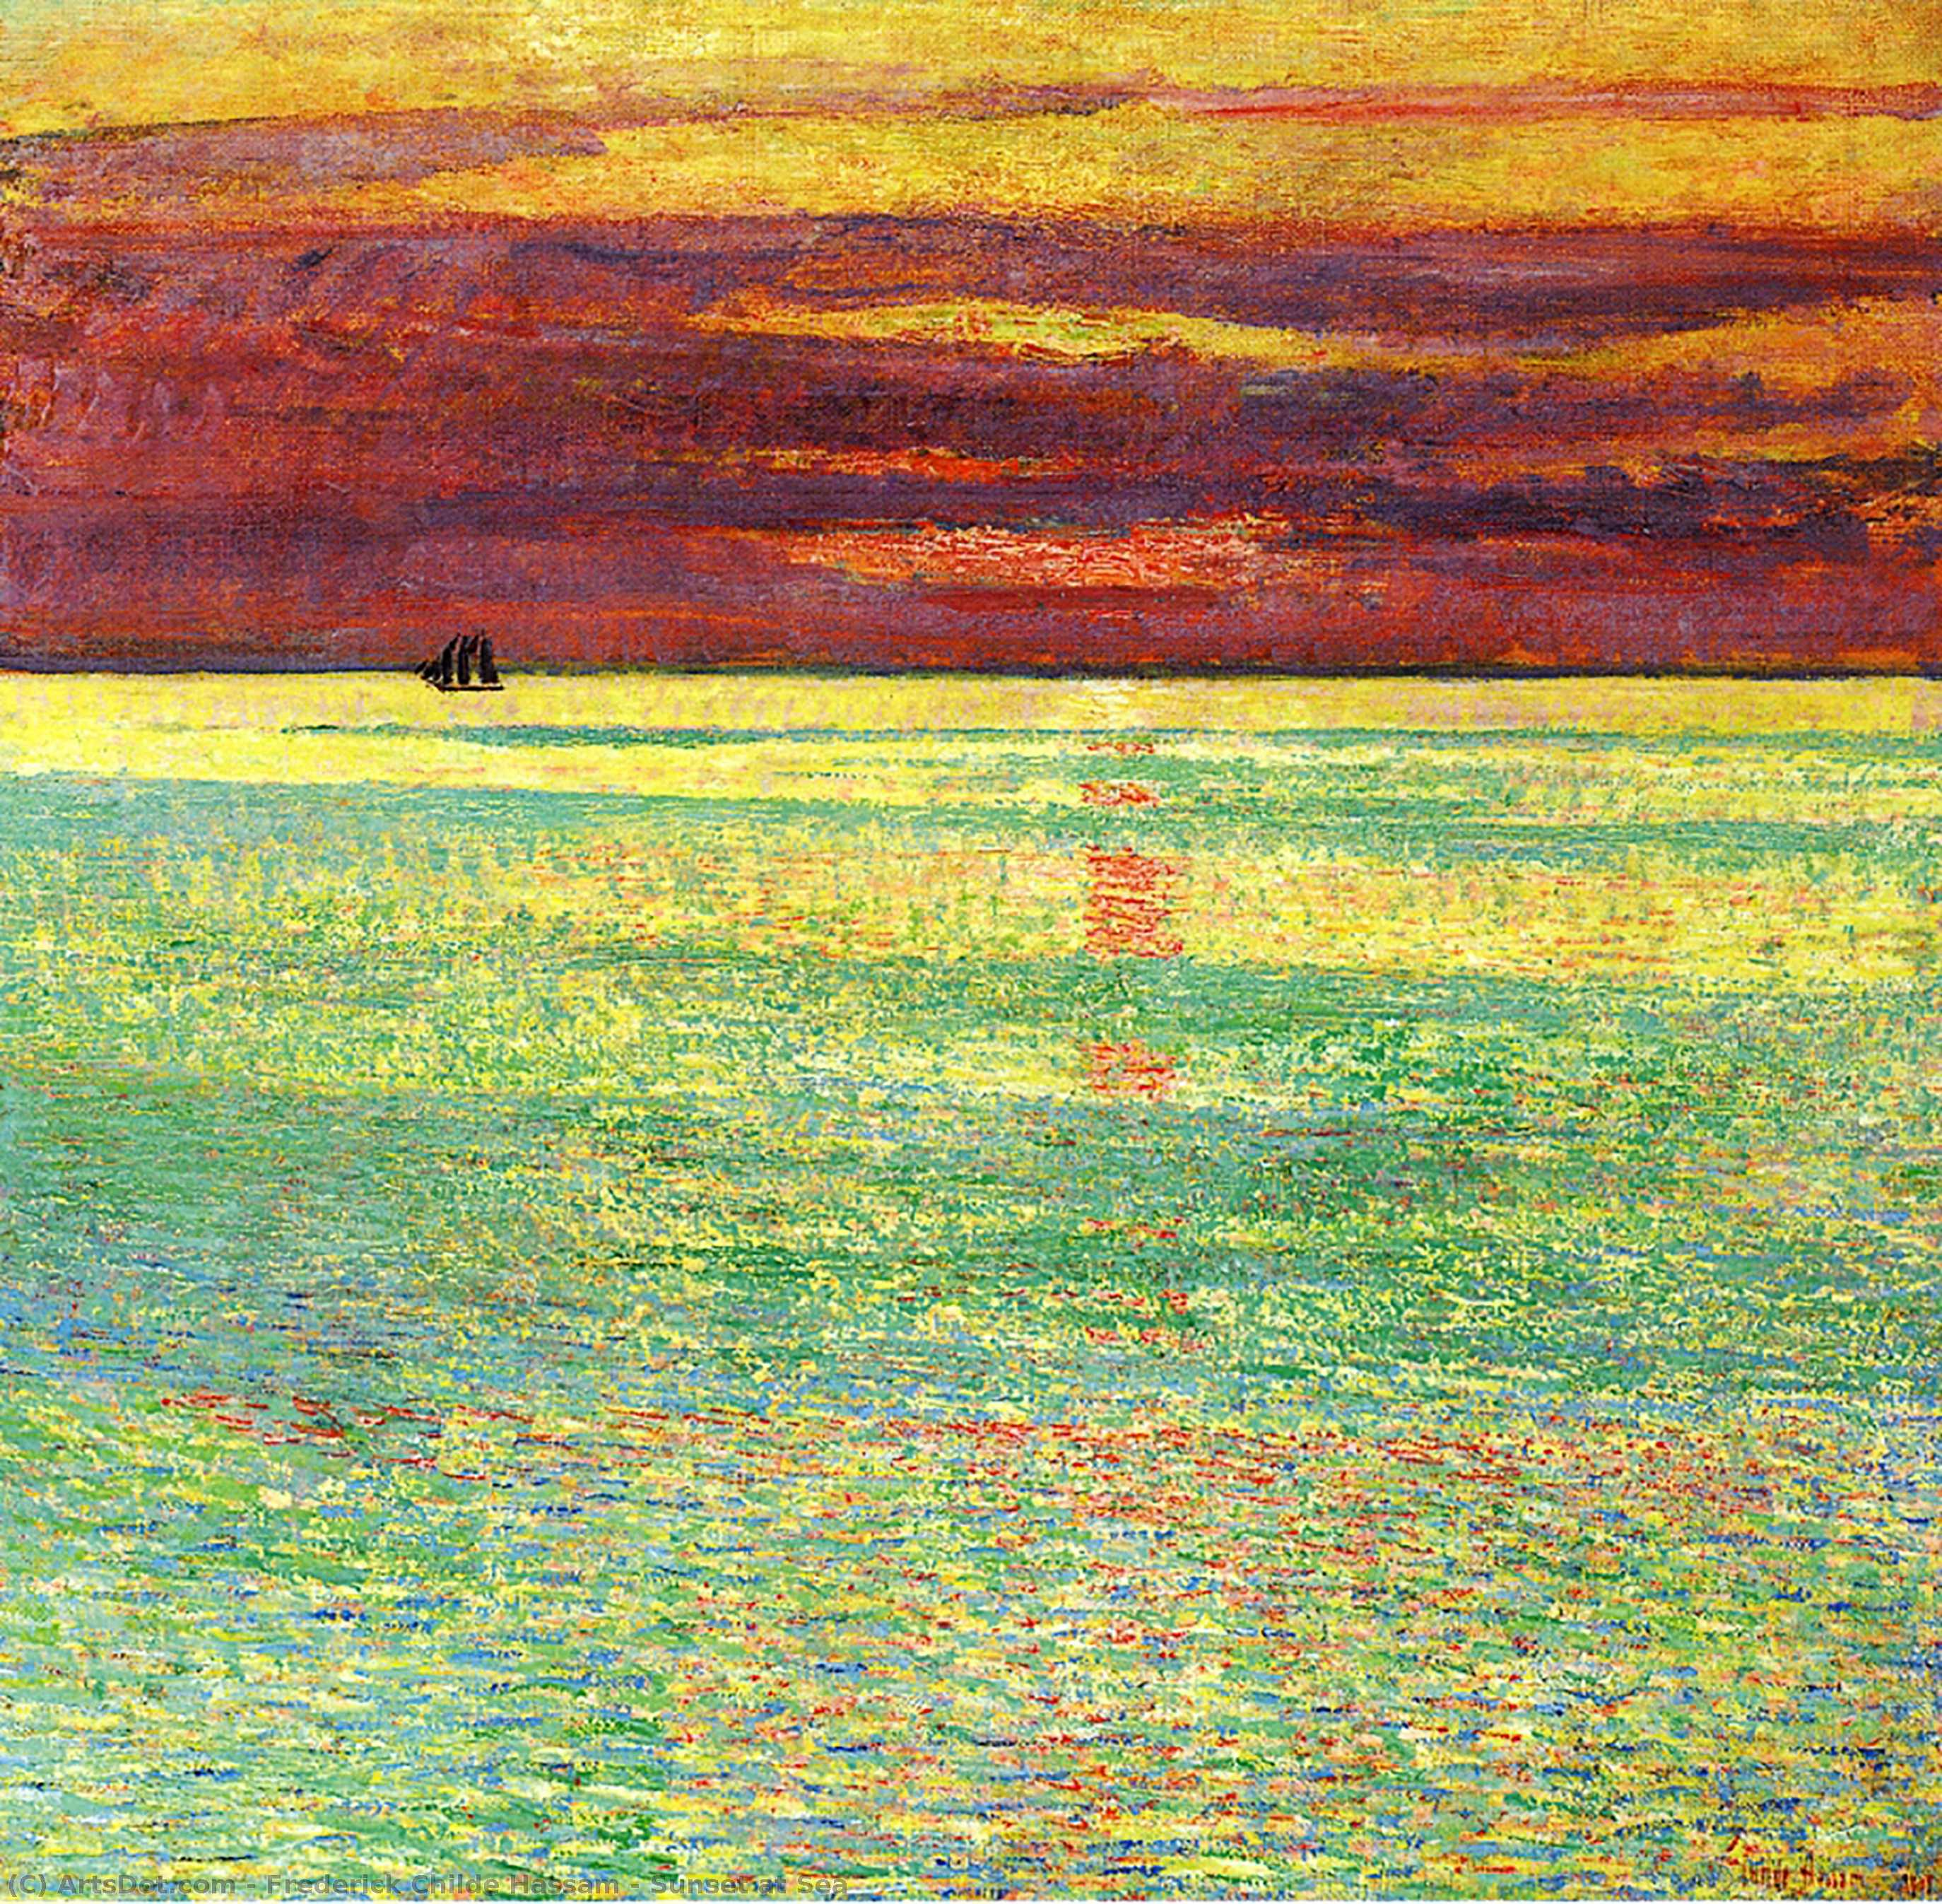 Sunset at Sea, 1911 by Frederick Childe Hassam (1859-1935, United States) | Museum Art Reproductions Frederick Childe Hassam | ArtsDot.com